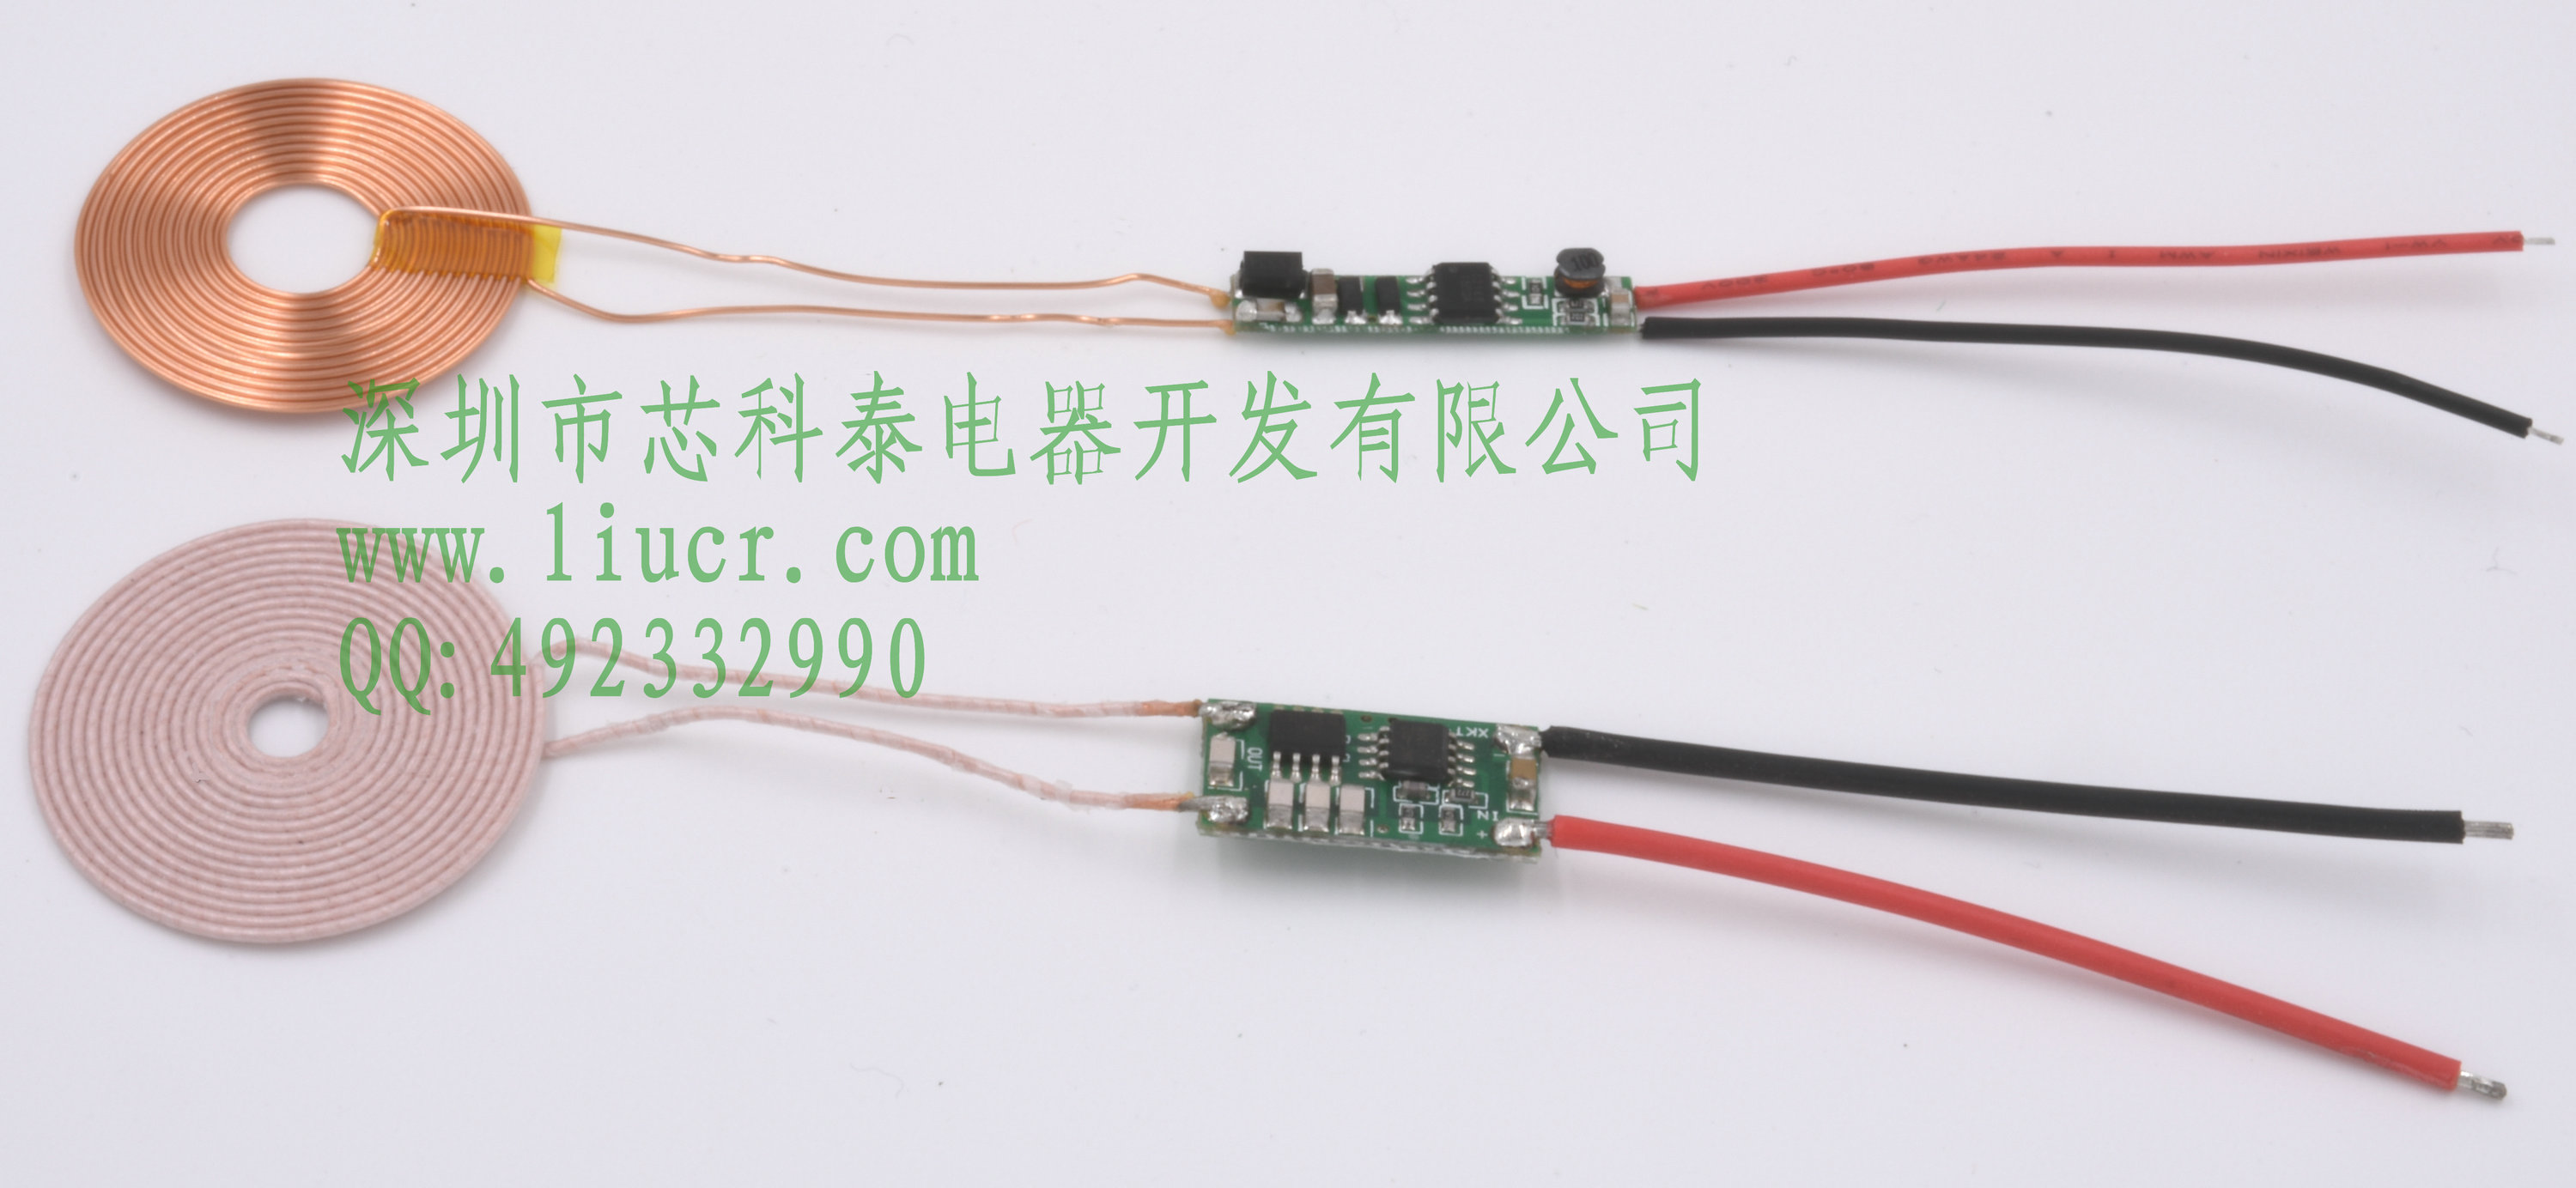 5V500mA USB Large Current Wireless  Supply Module XKT412 Chip Circuit Diagram